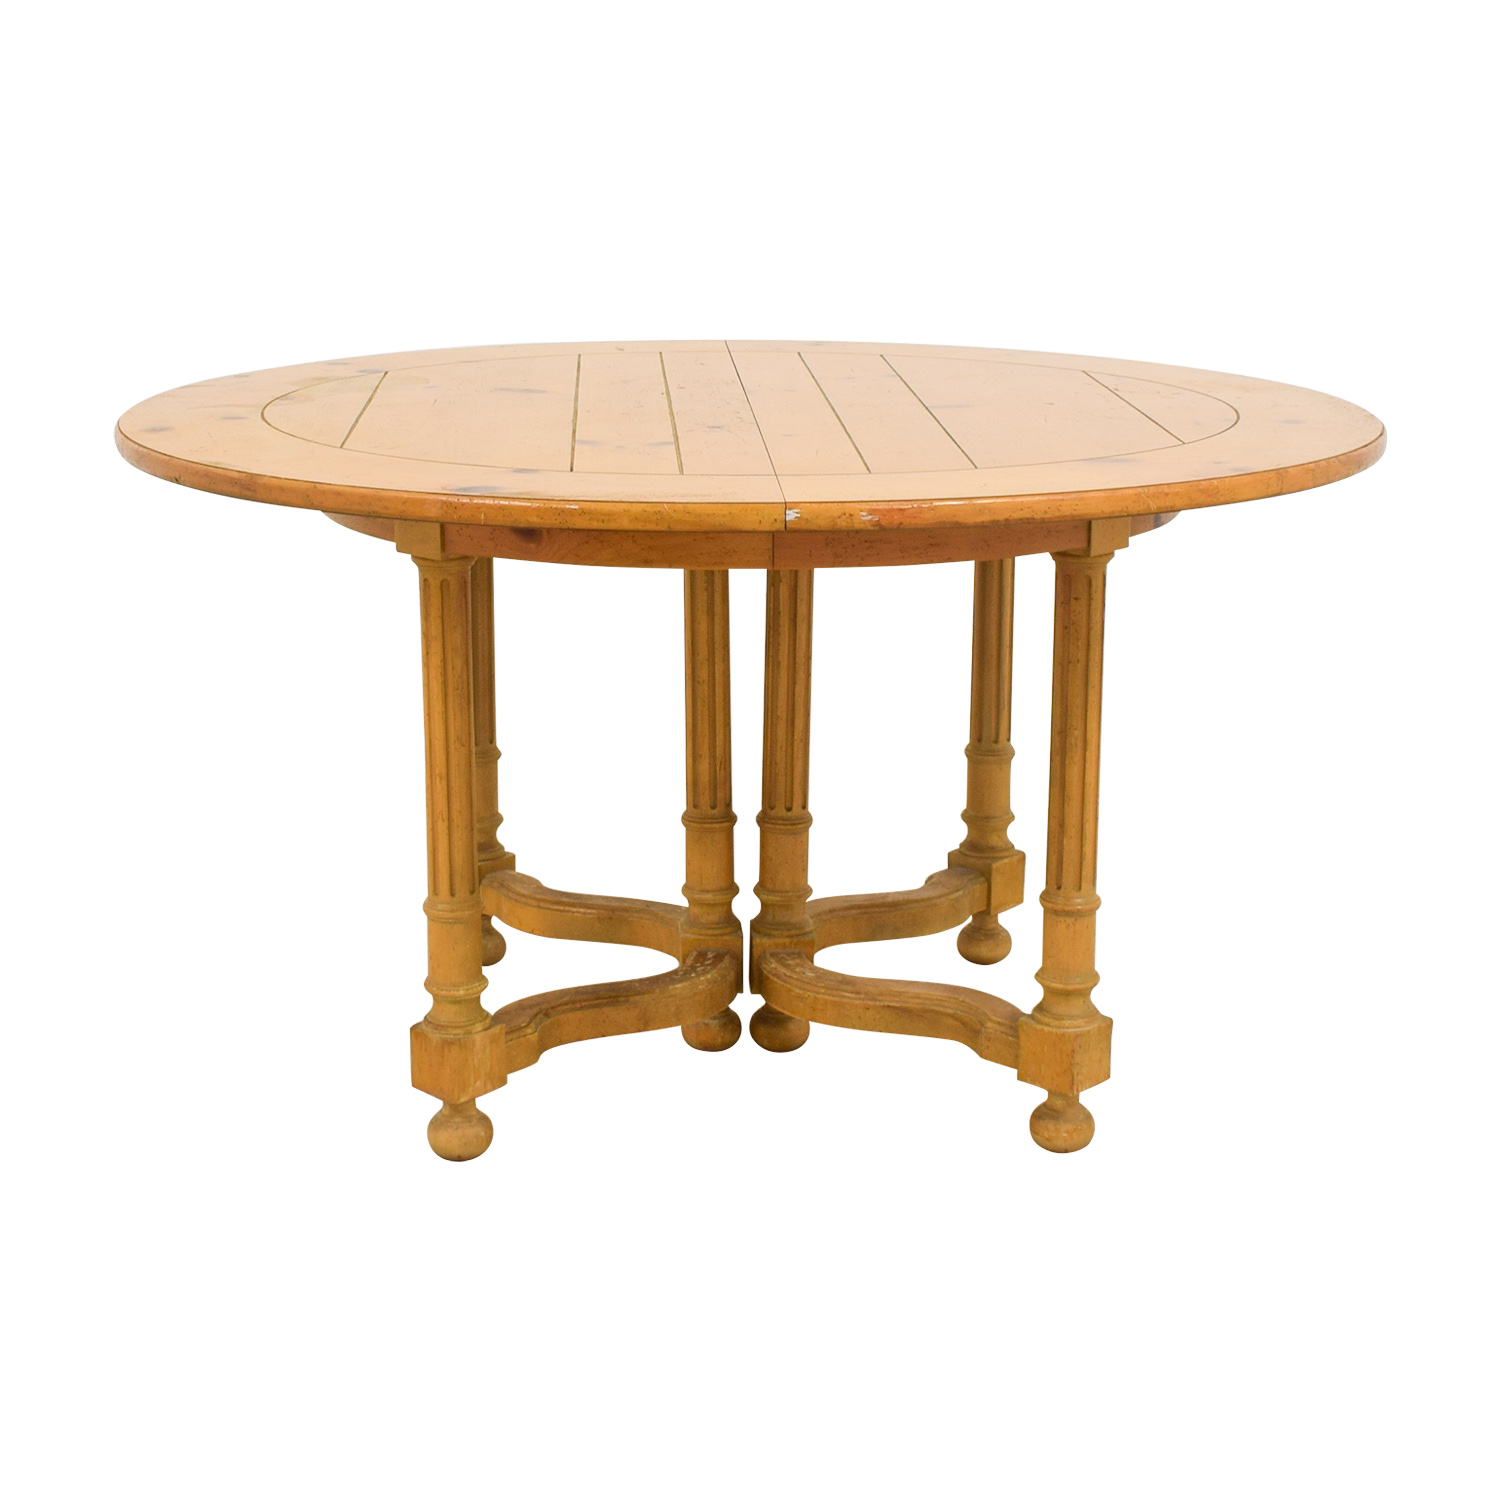 buy Milling Road Milling Road Natural Round Table with Leaf online